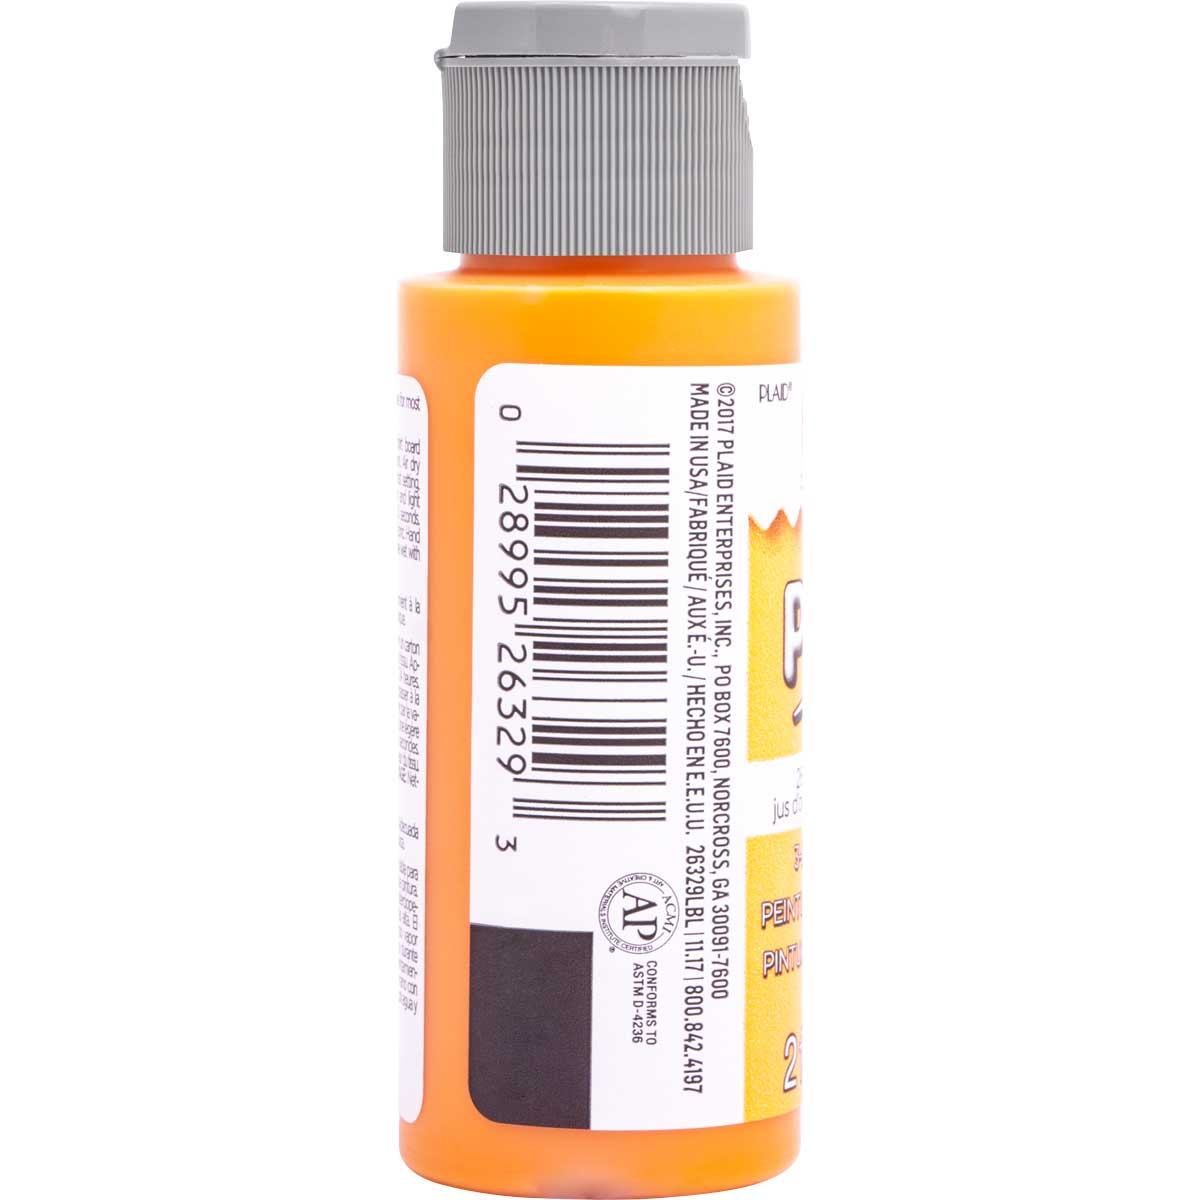 Fabric Creations™ Plush™ 3-D Fabric Paints - Orange Juice, 2 oz.